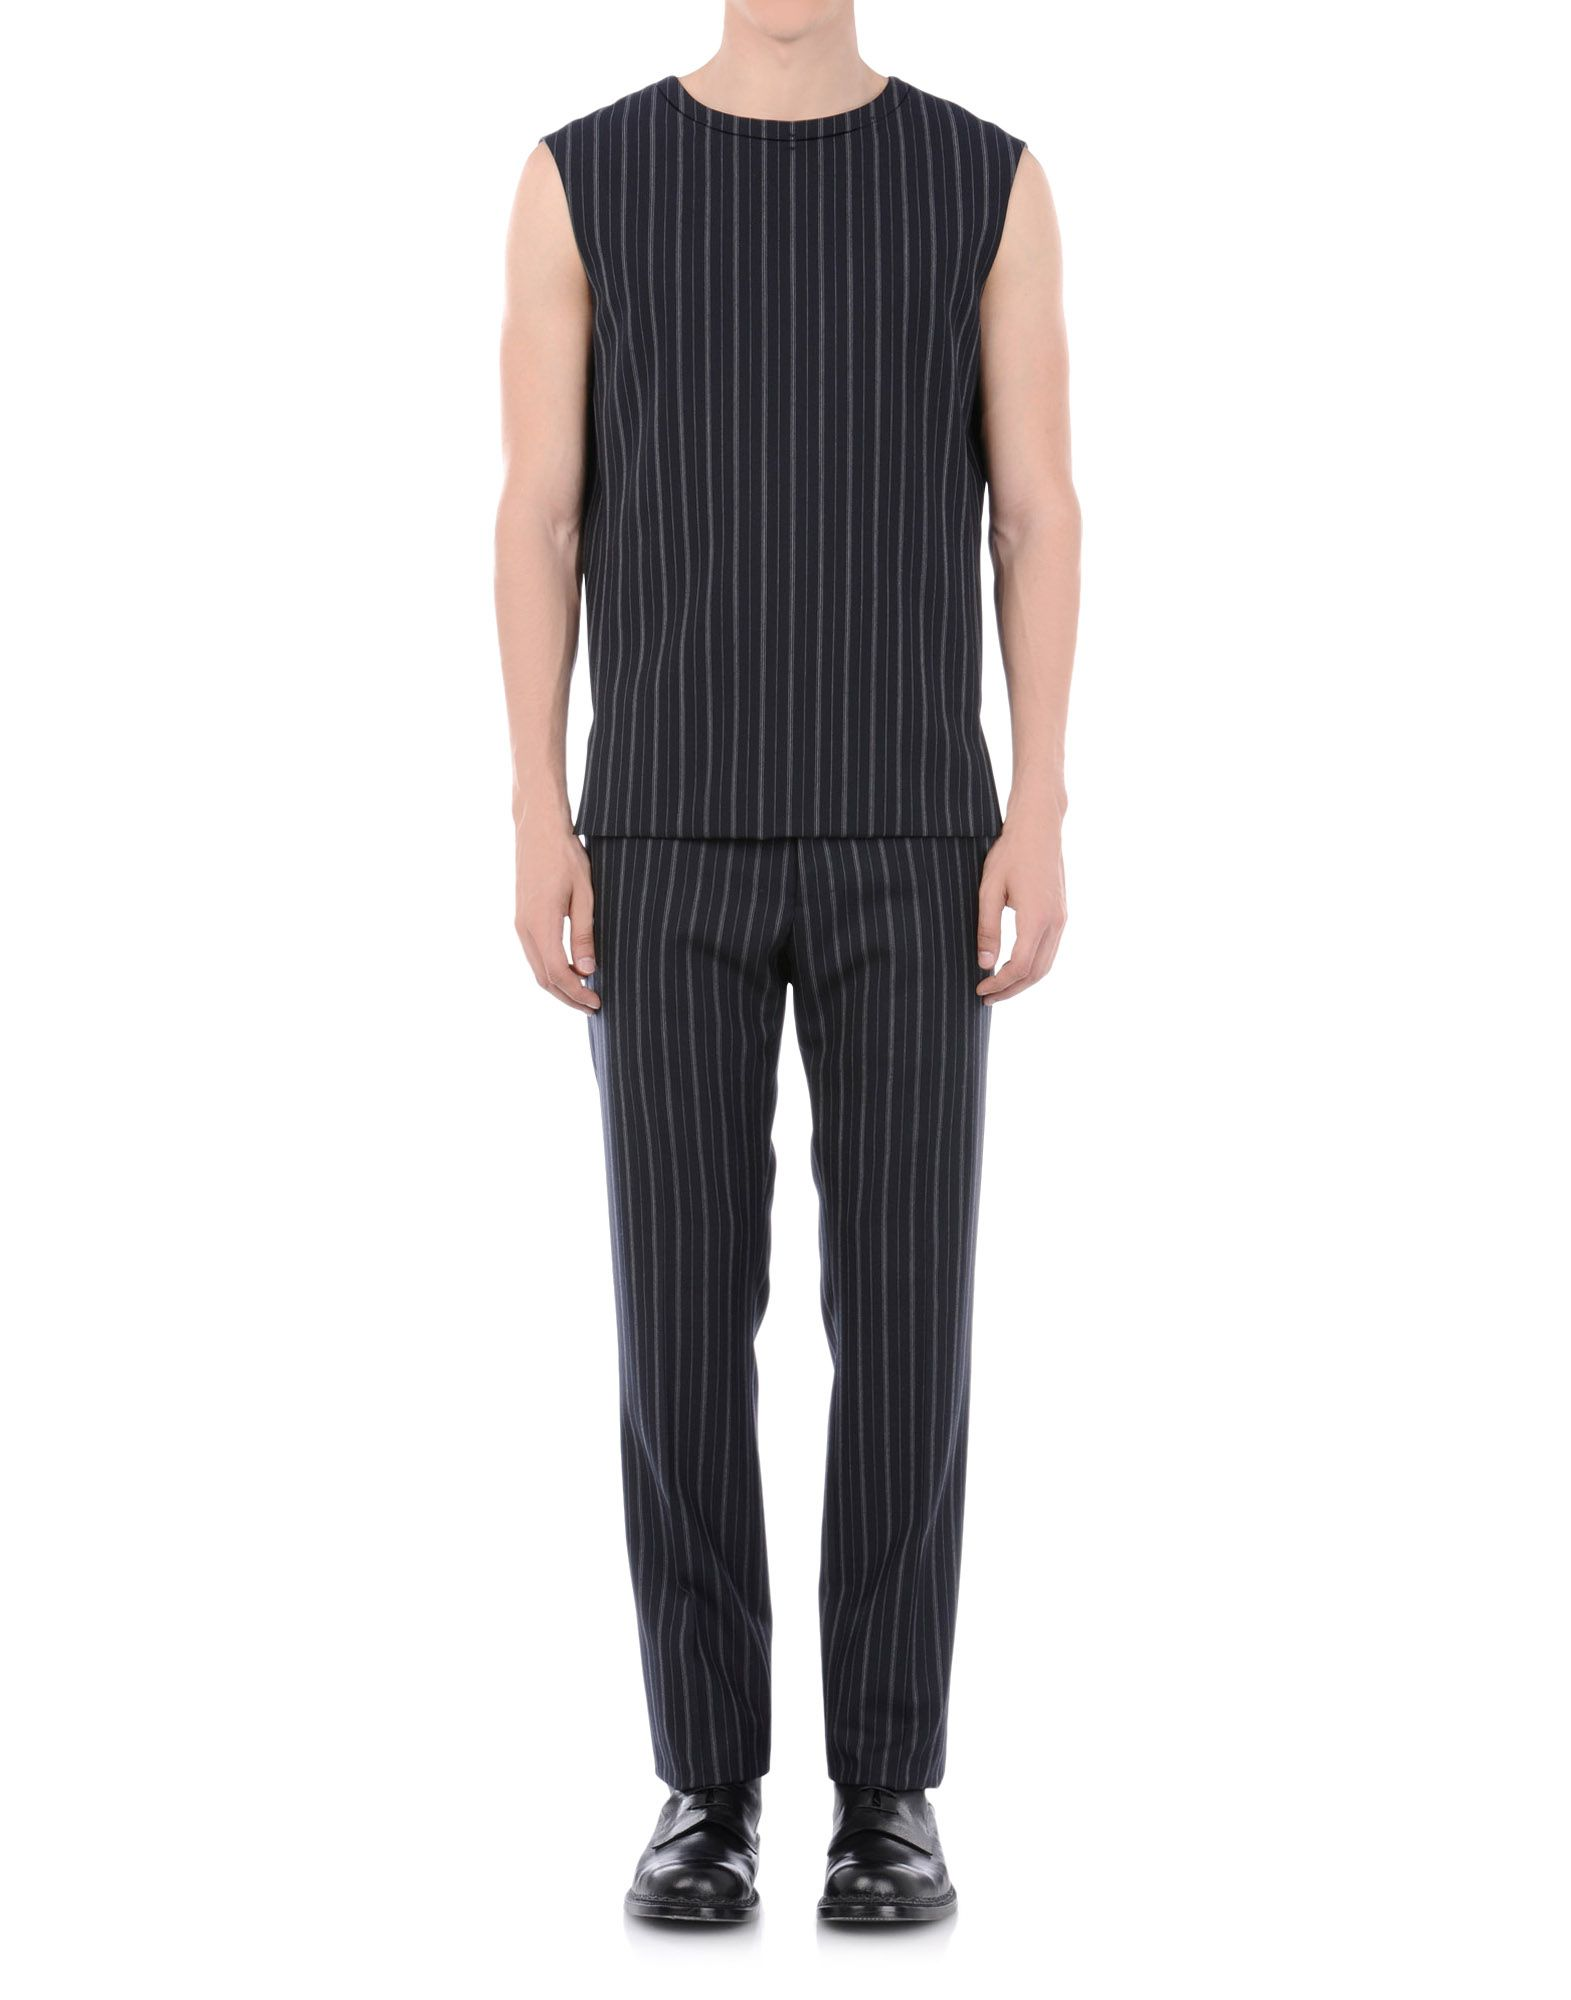 Tailored pant - JIL SANDER Online Store